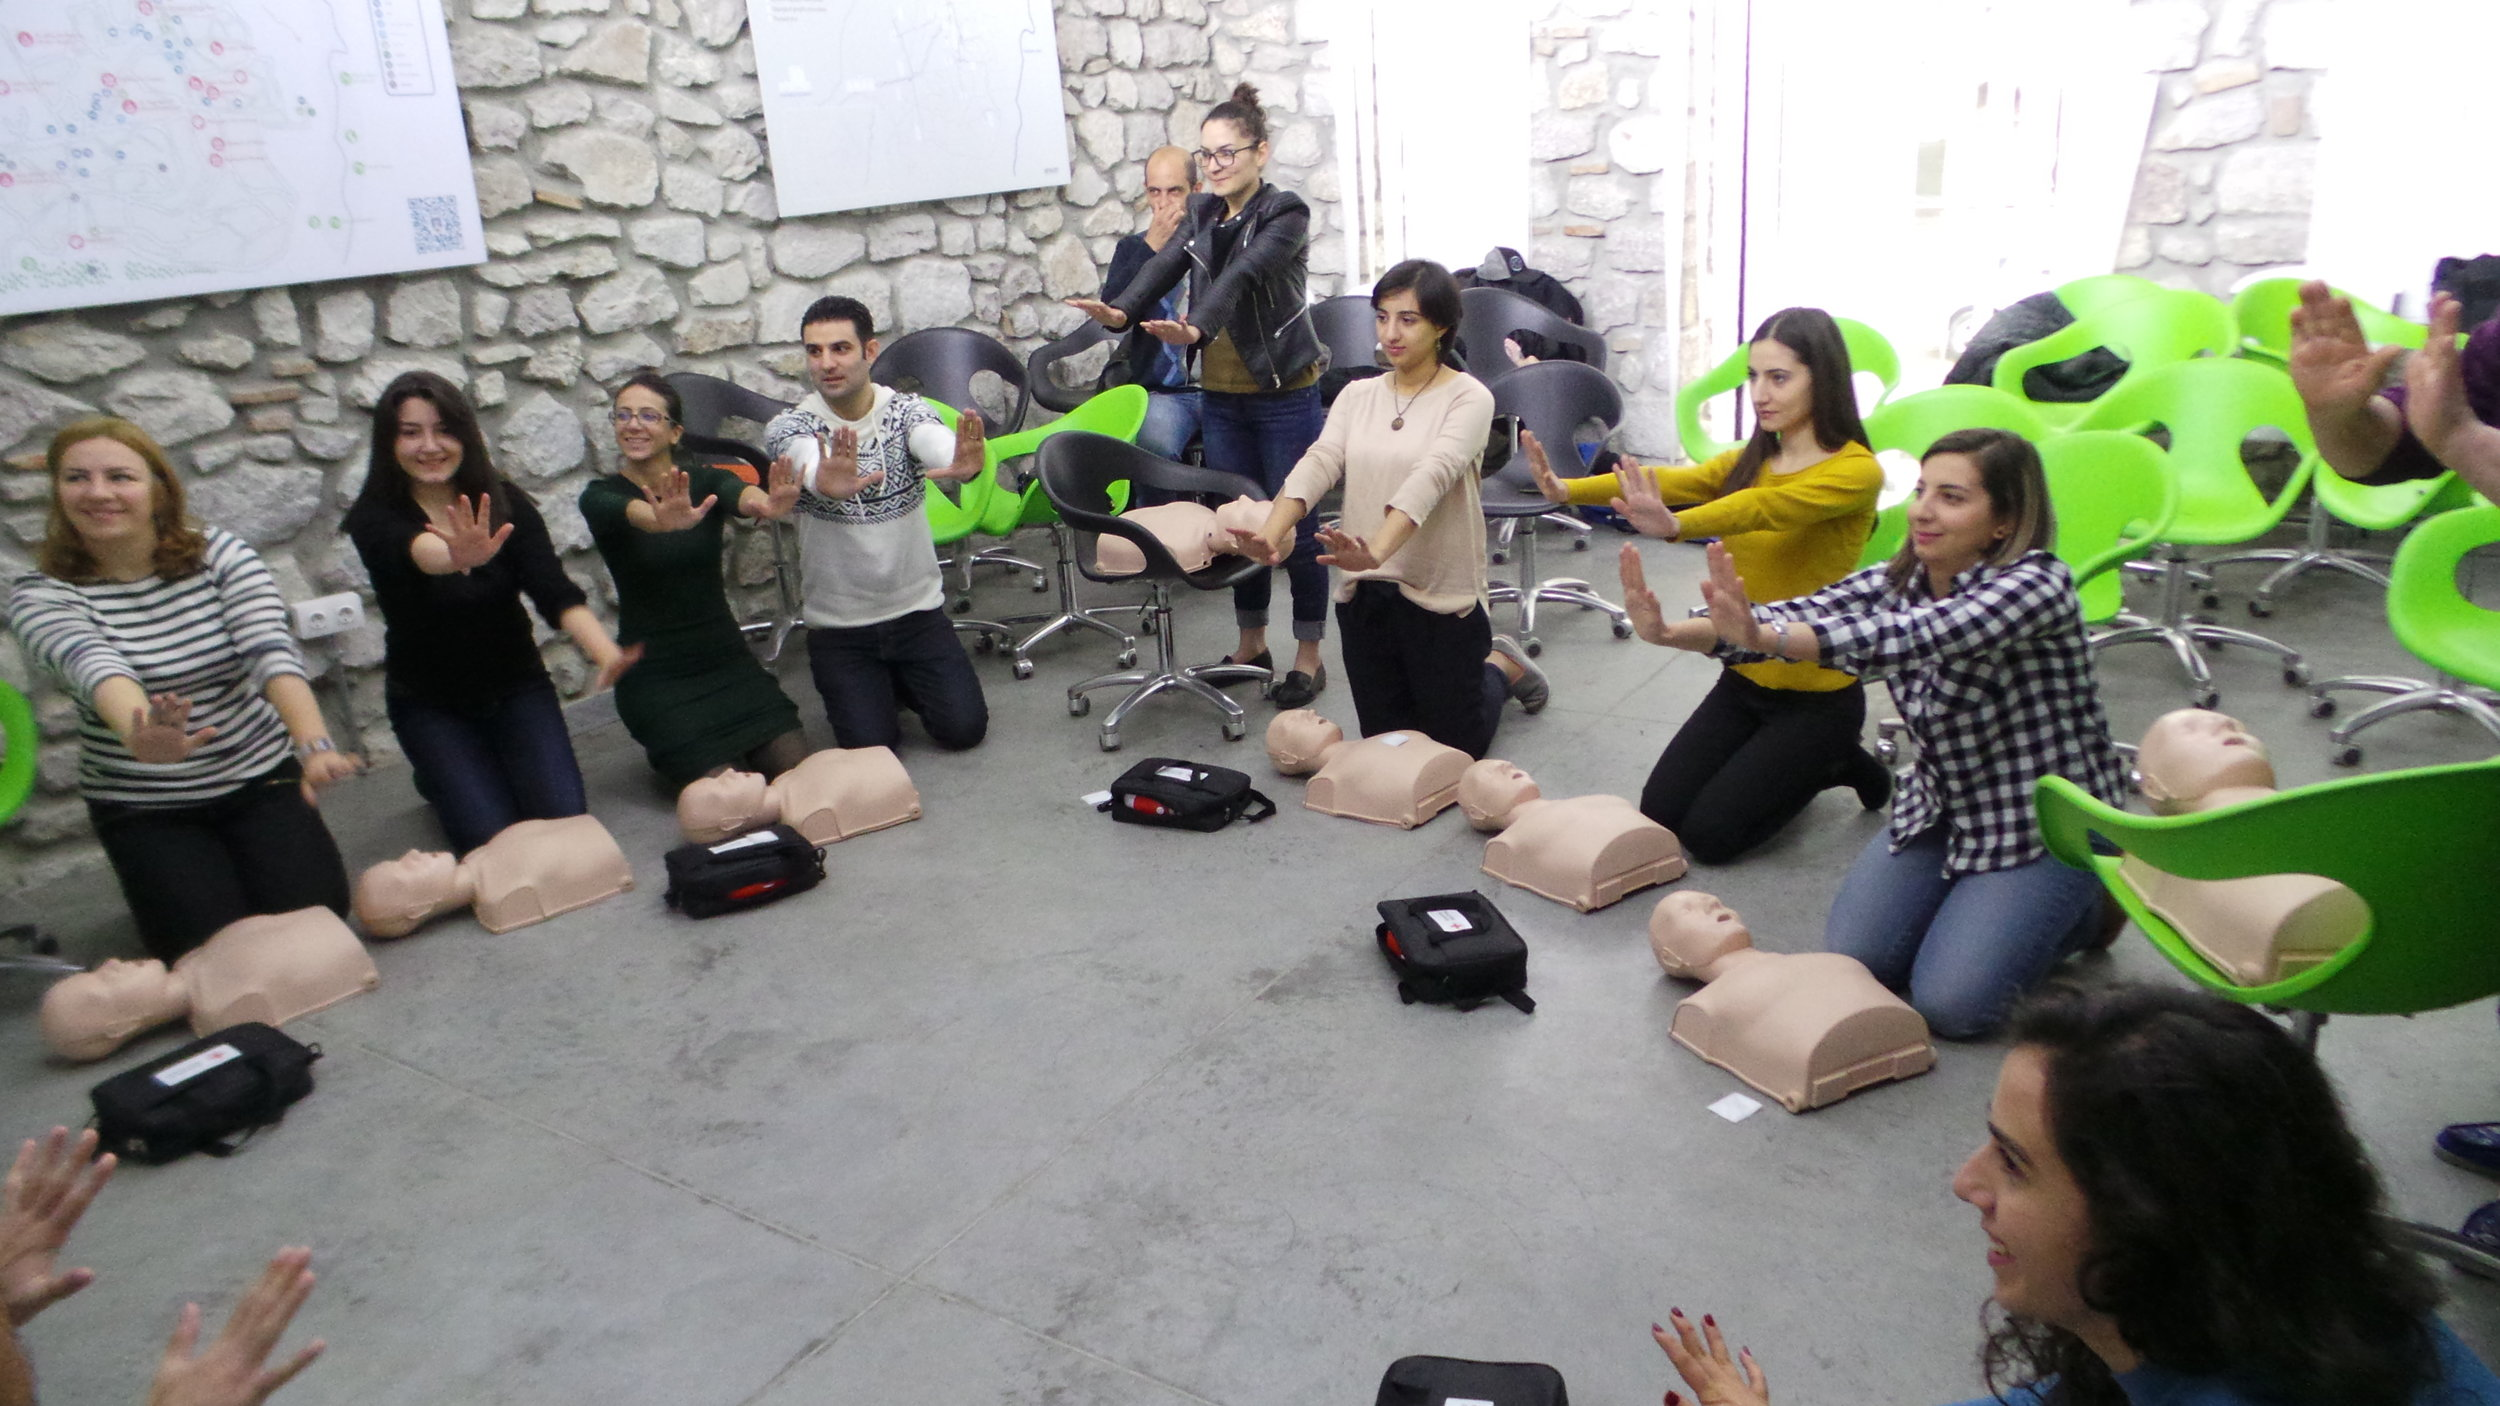 Since our training began in various cities in Armenia, more pediatric lives have been saved. -